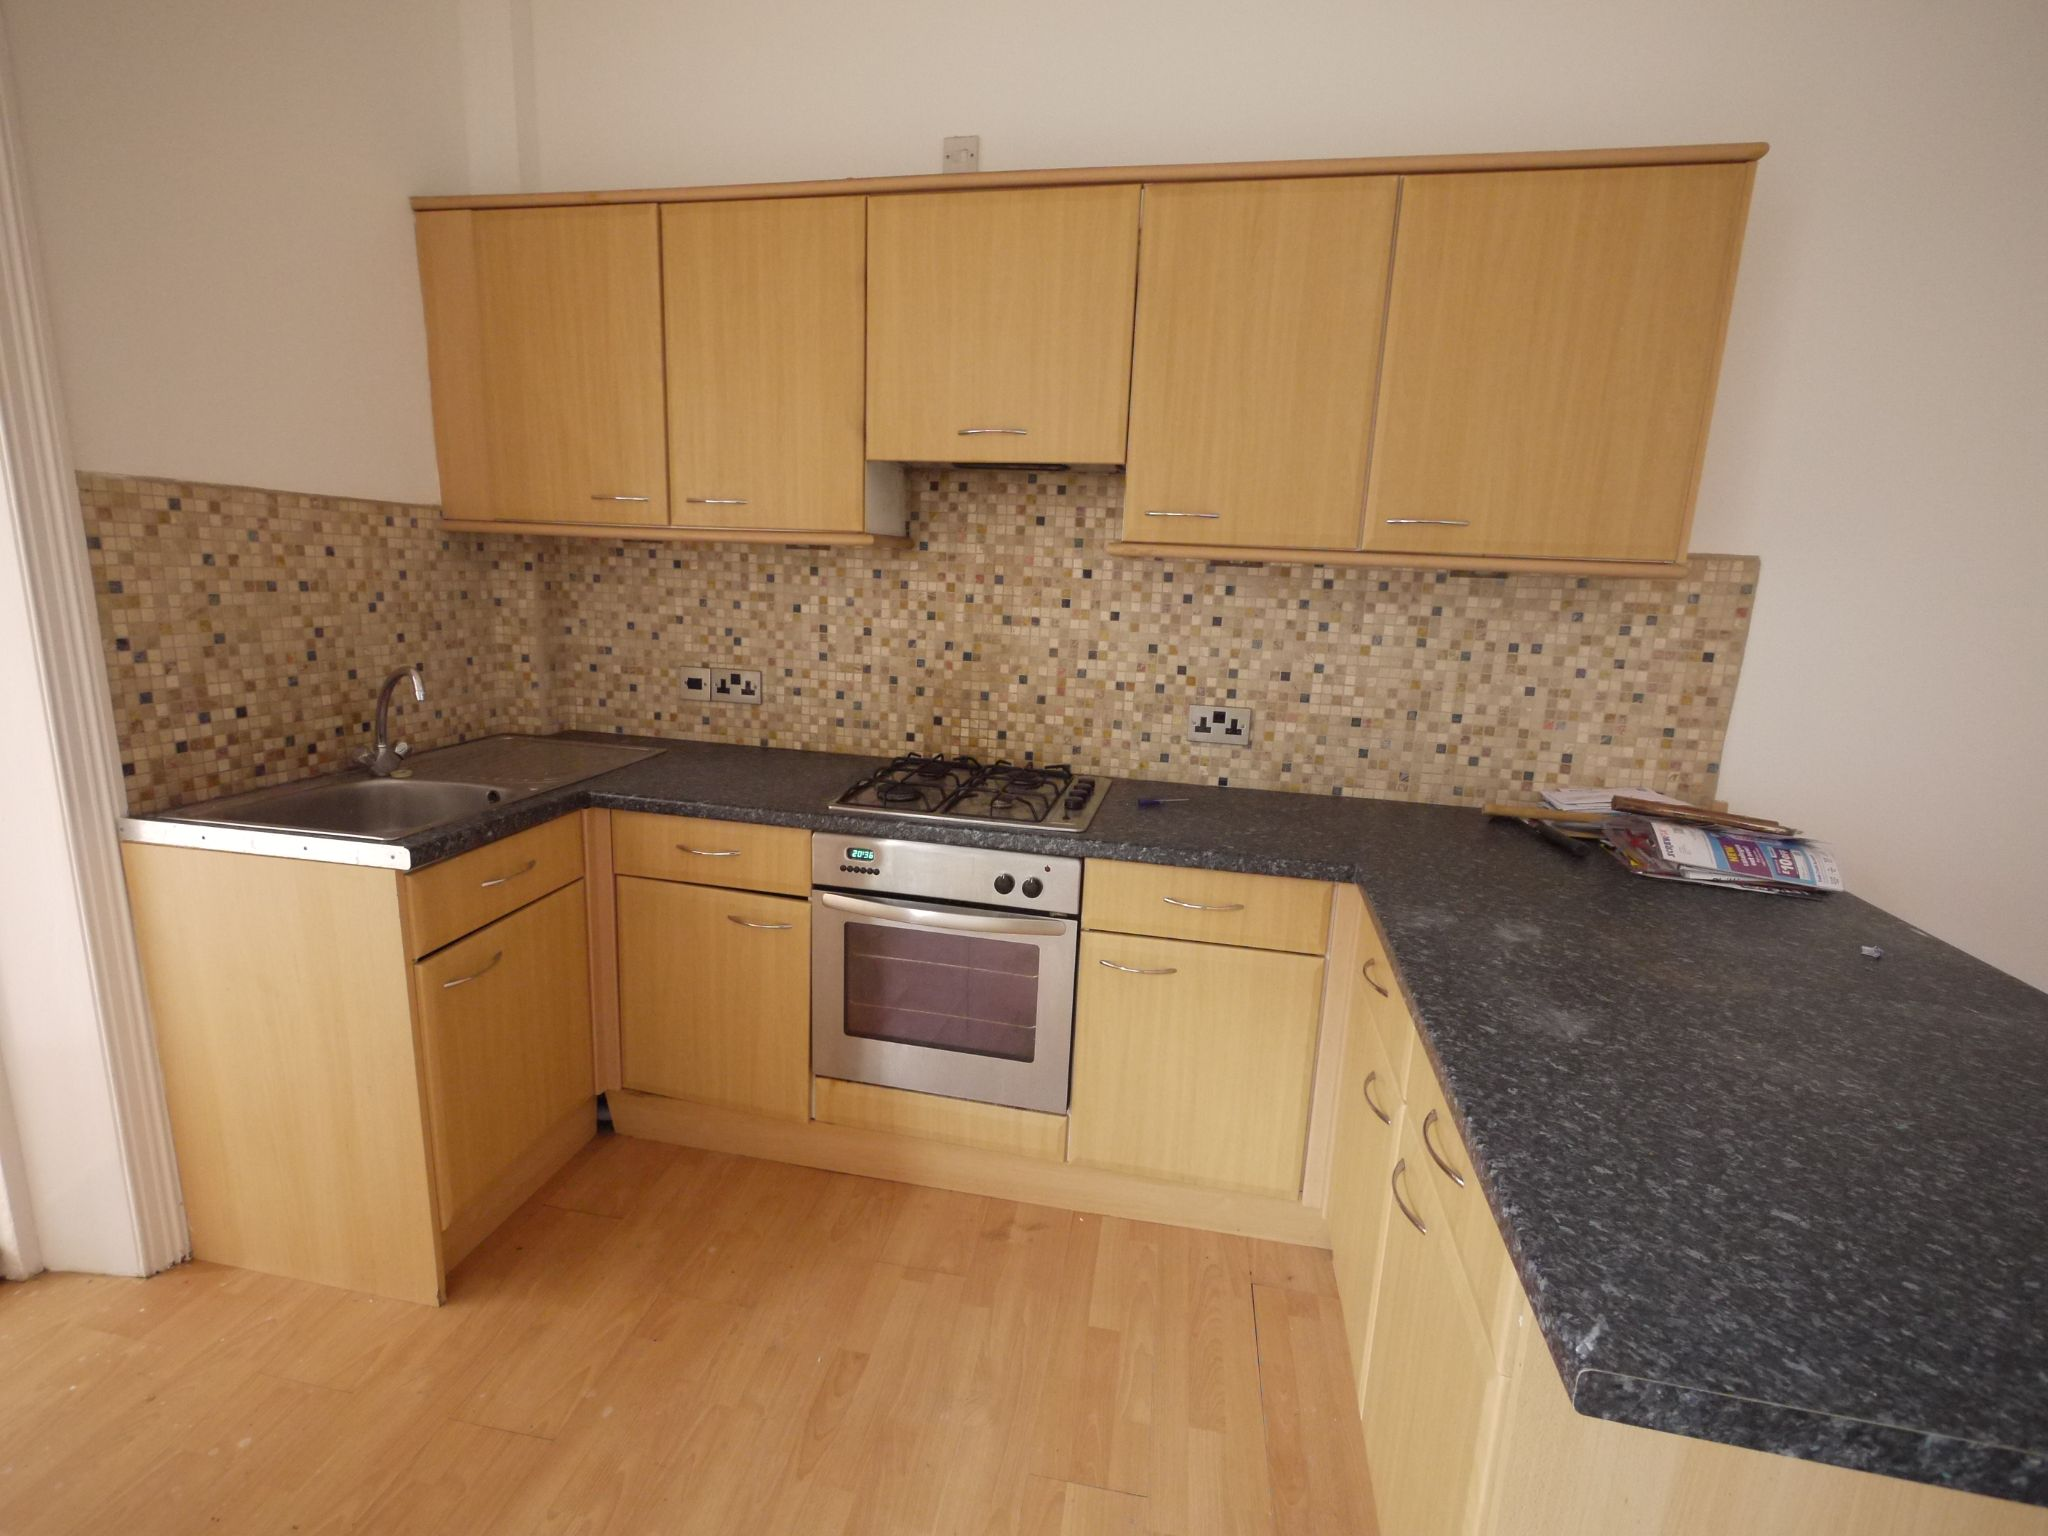 2 bedroom ground floor flat/apartment To Let in Halifax - Kitchen area.